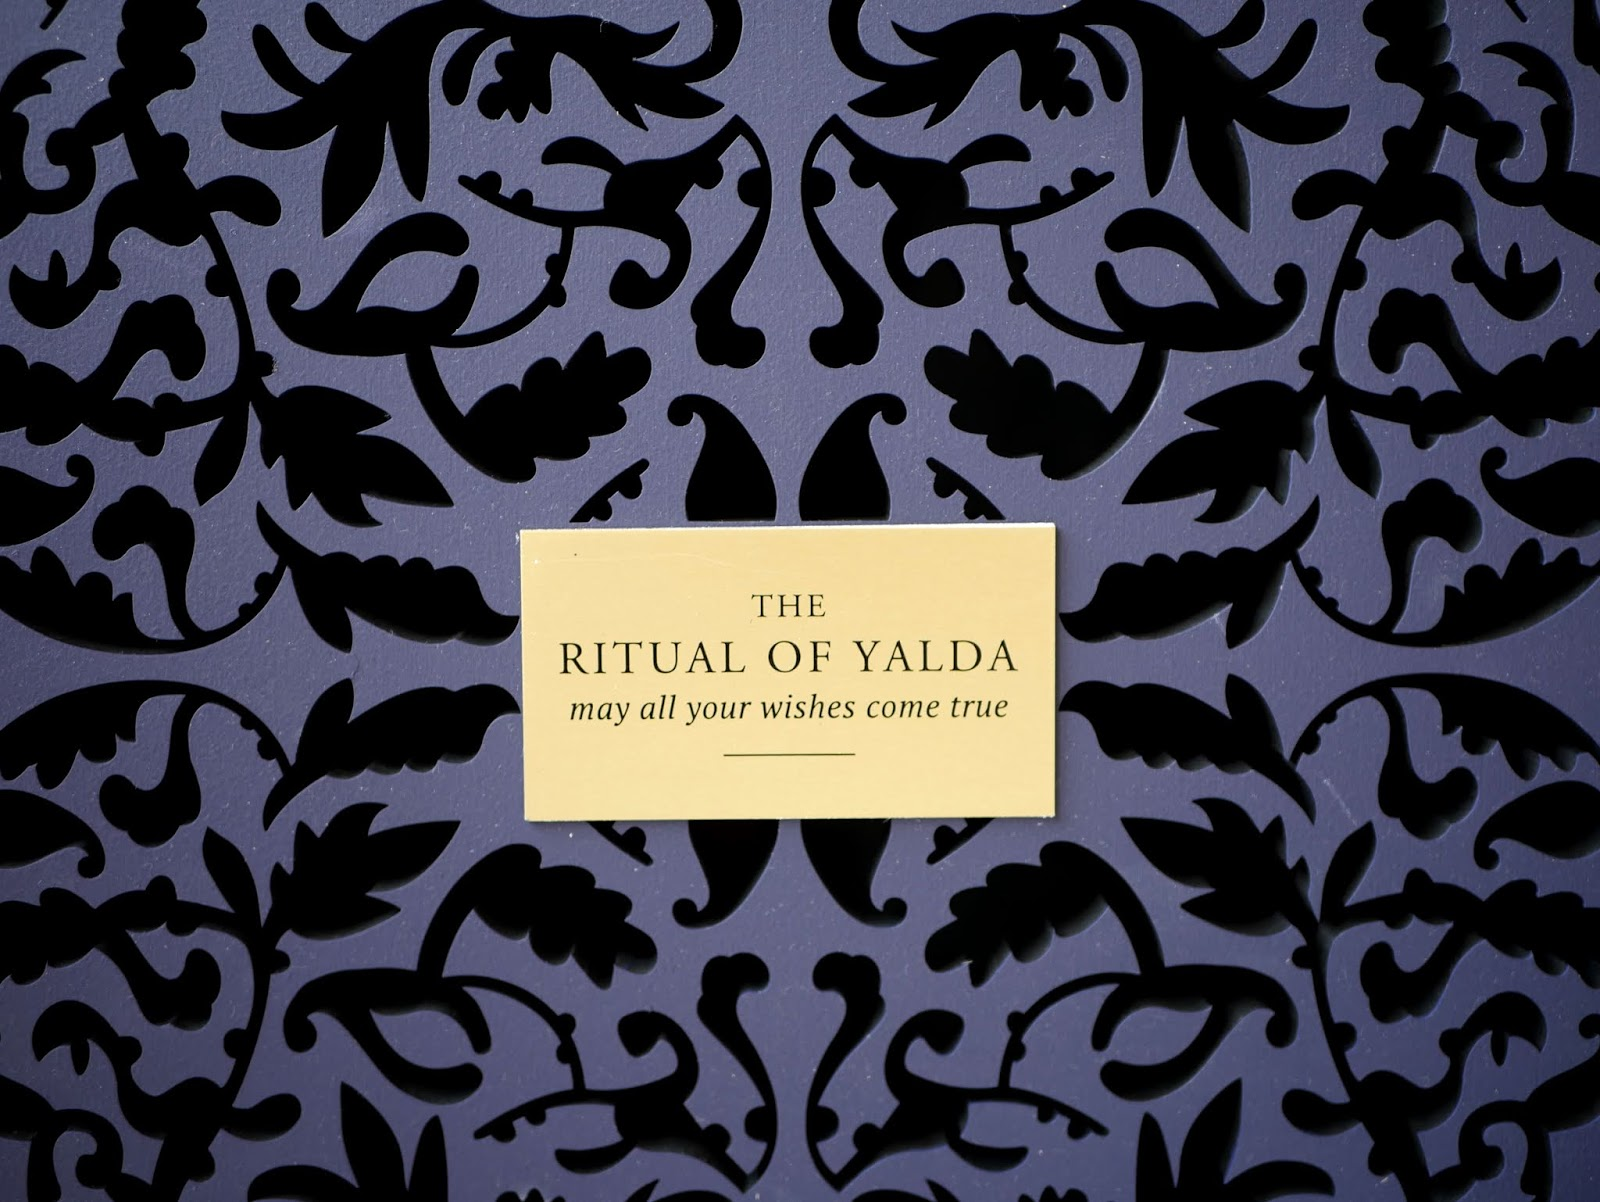 Rituals - The Ritual of Yalda